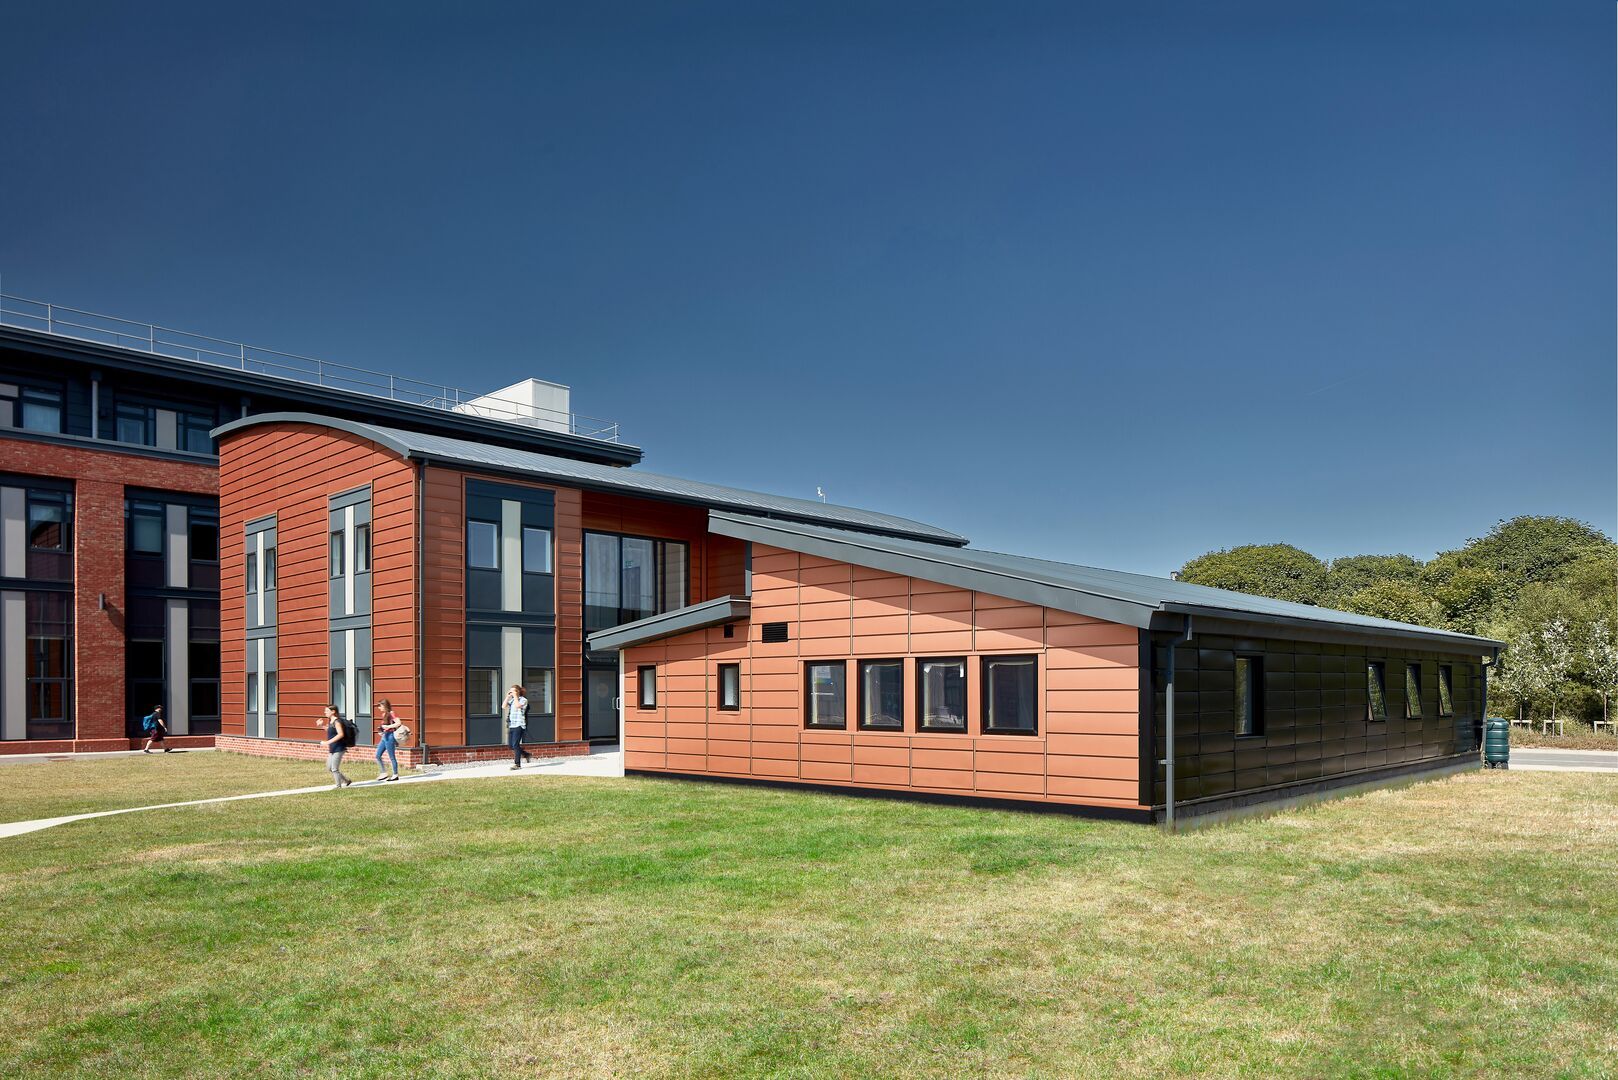 Trisobuild wall active classroom swansea tata steel construction Colorcoat Urban  rainwater systems